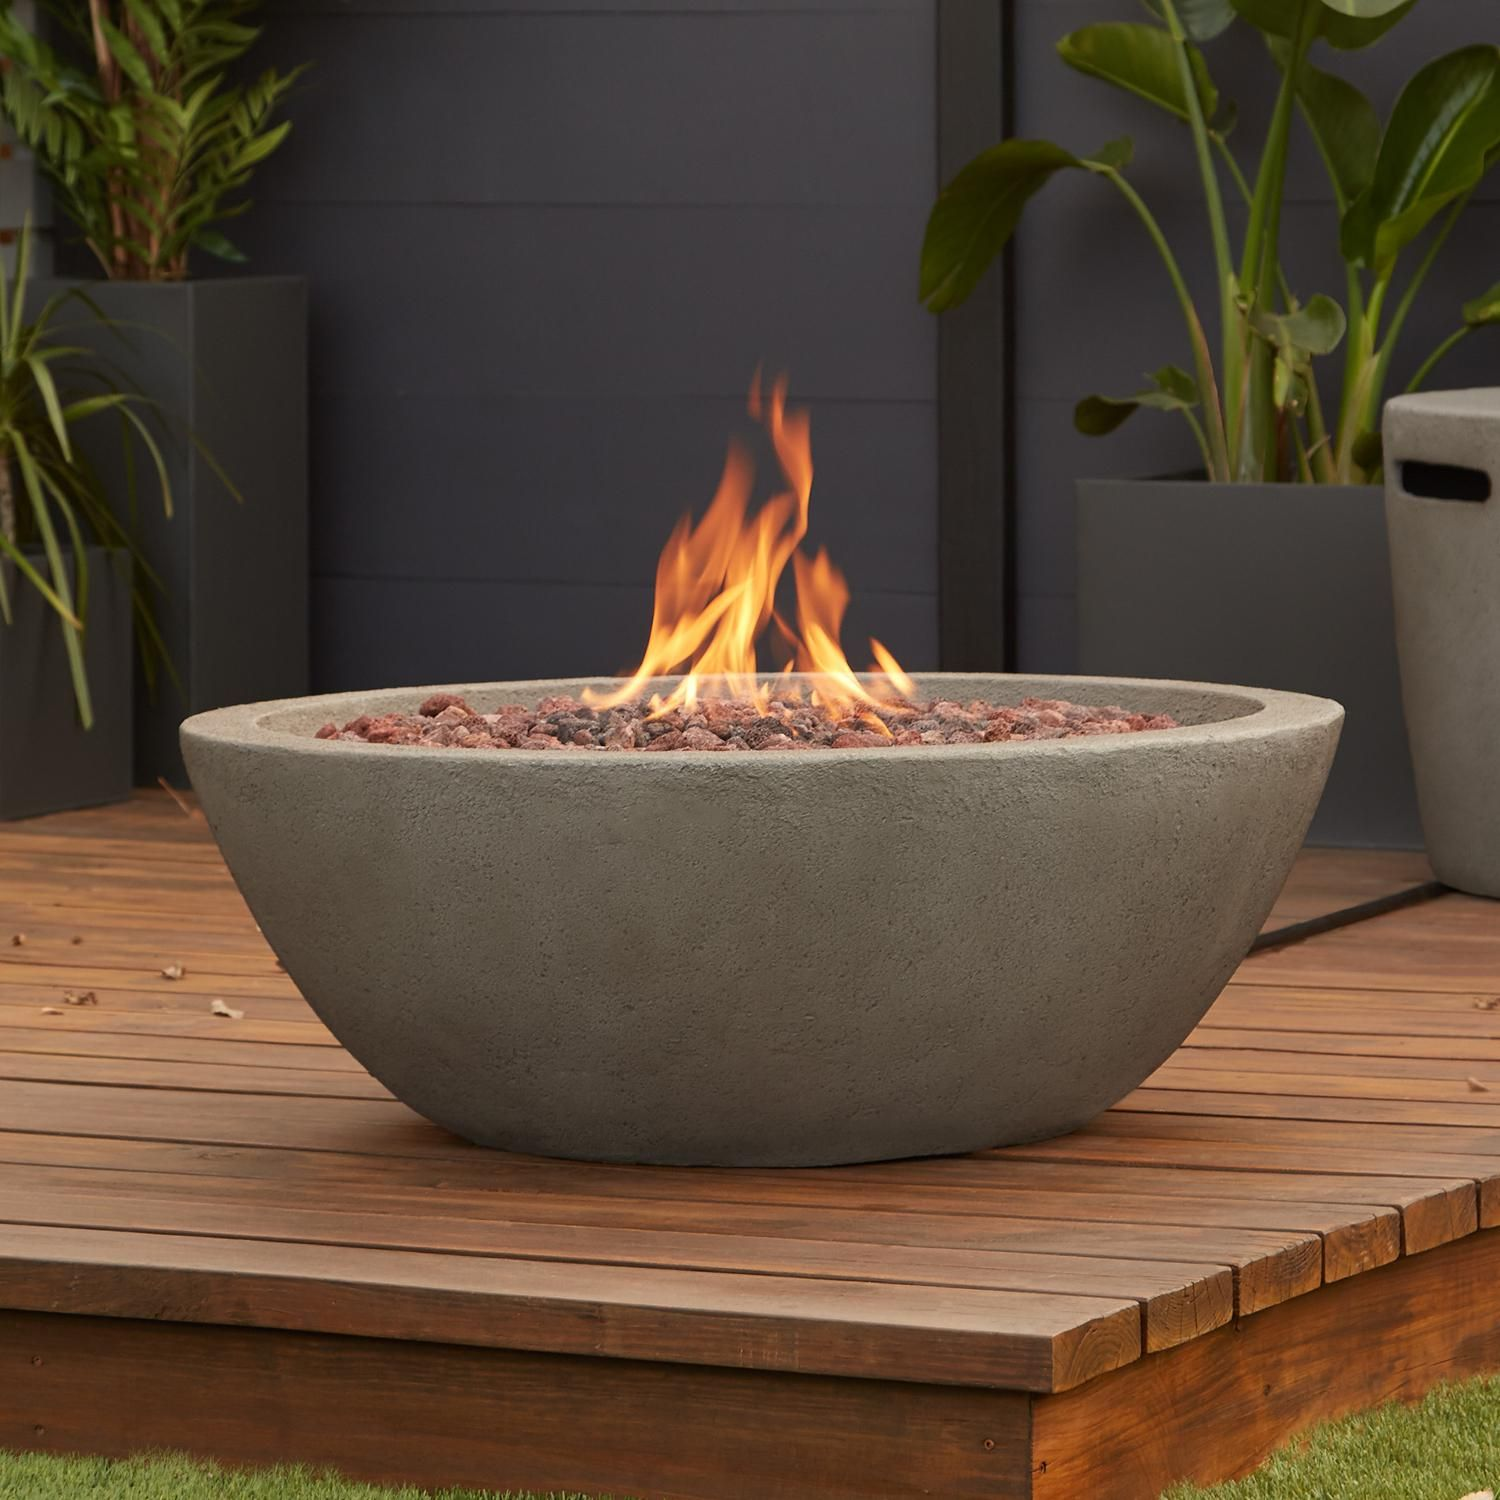 Real Flame Riverside 36 Inch Round Propane Fire Bowl Glacier Gray C539lp Glg Bbqguys Fire Bowls Gas Firepit Propane Fire Bowl